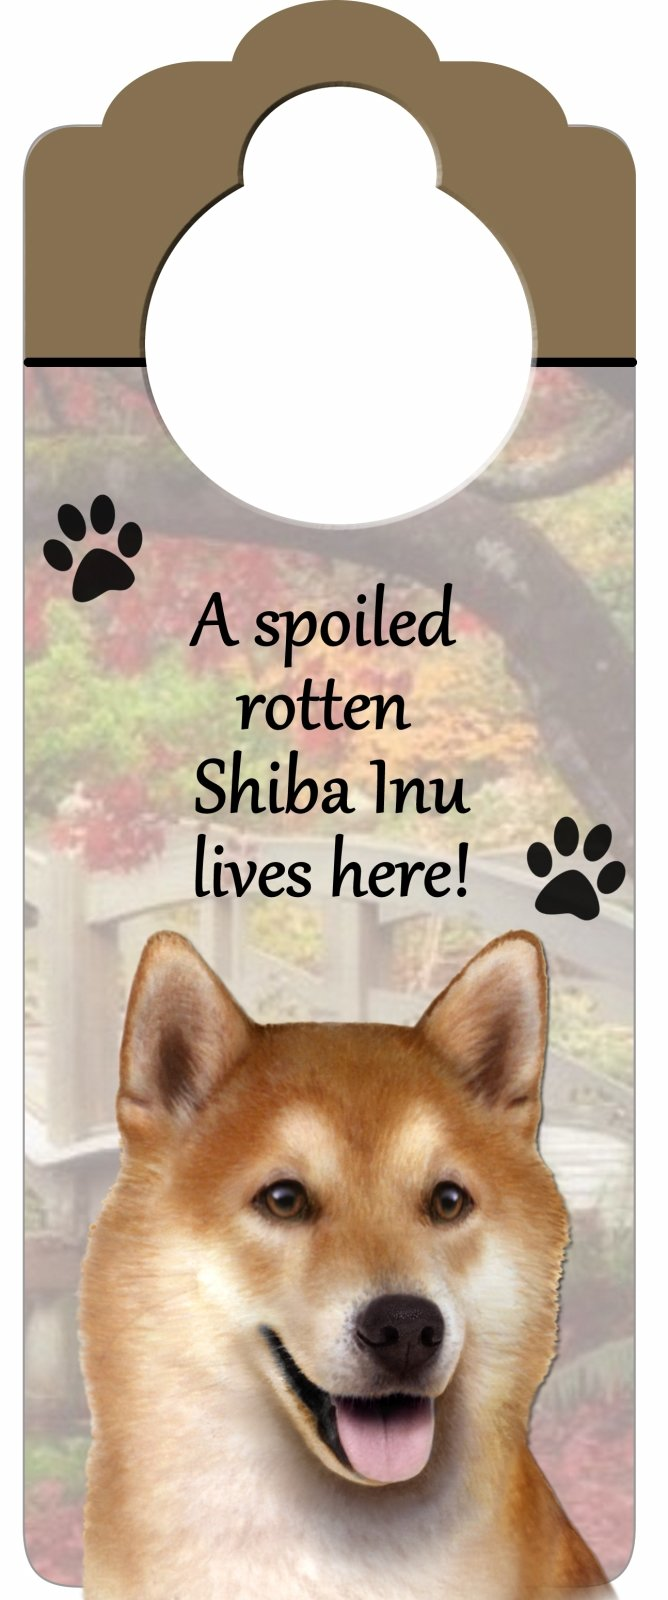 E&S Pets Shiba Inu Wood Sign A Spoiled Rotten Shiba Inu Lives Here with Artistic Photograph Measuring 10 by 4 Inches Can Be Hung On Doorknobs Or Anywhere In Home